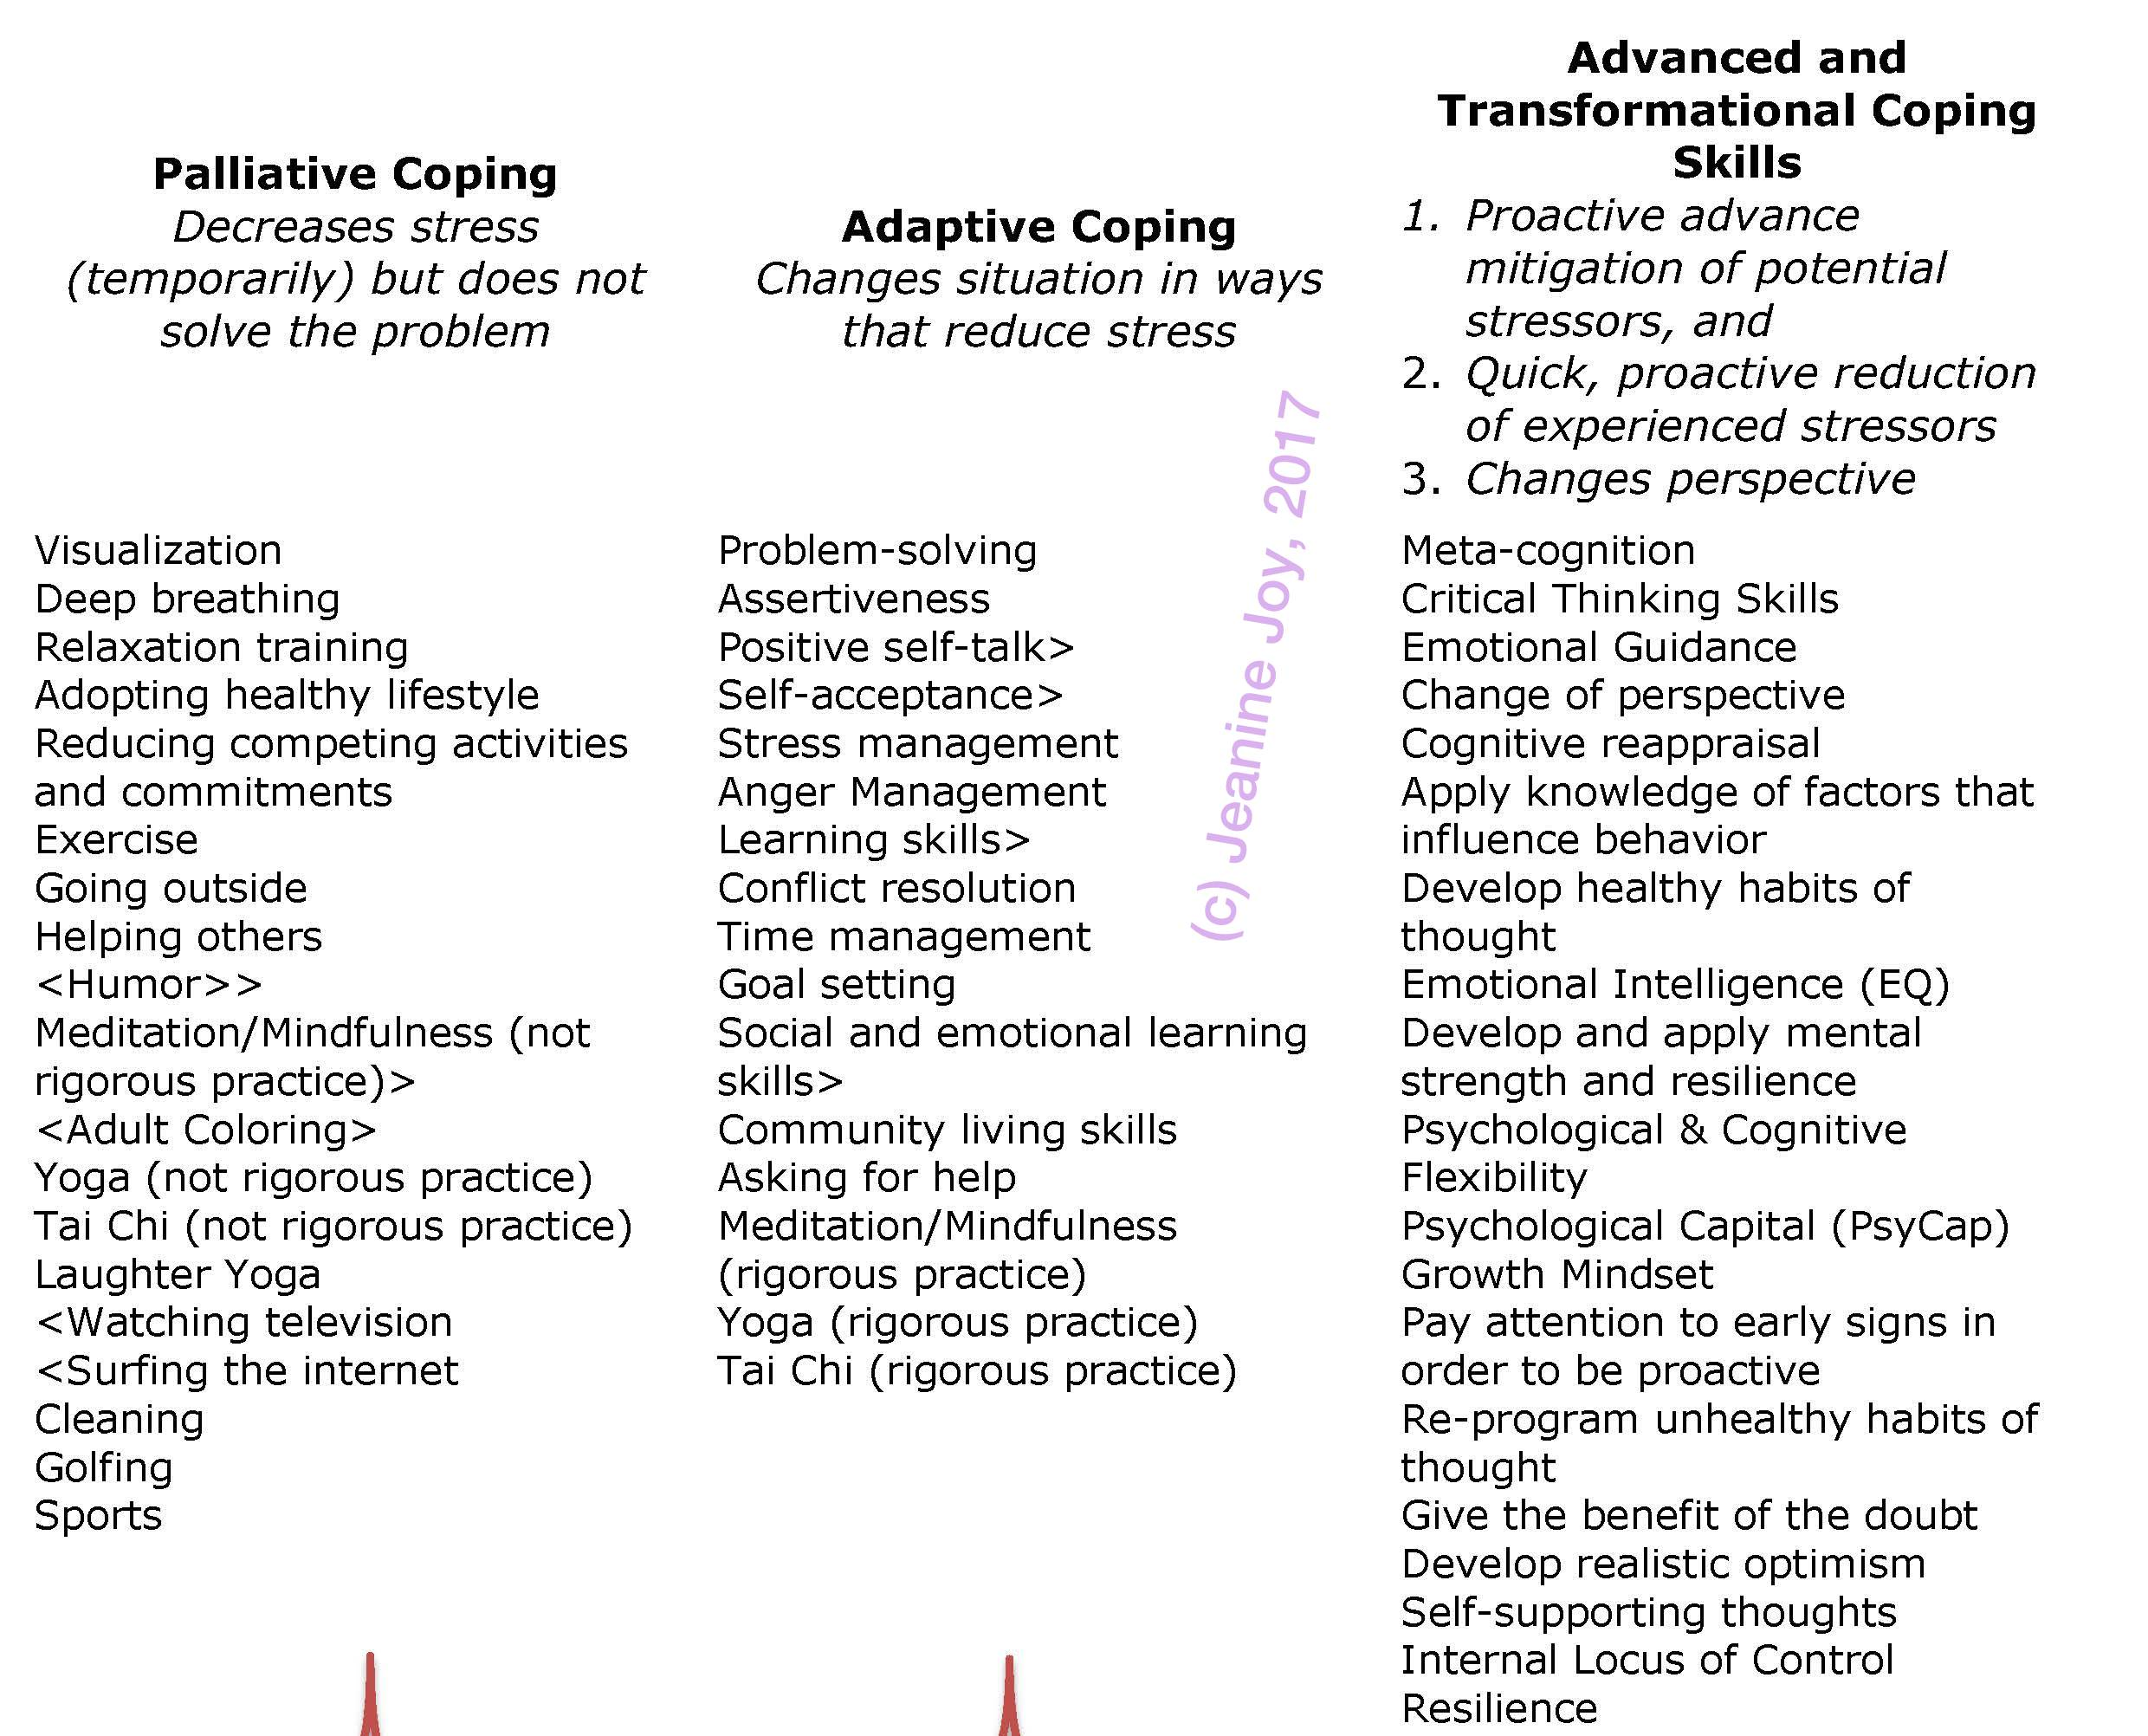 Advanced and Transformative Coping Skills Build Resilience